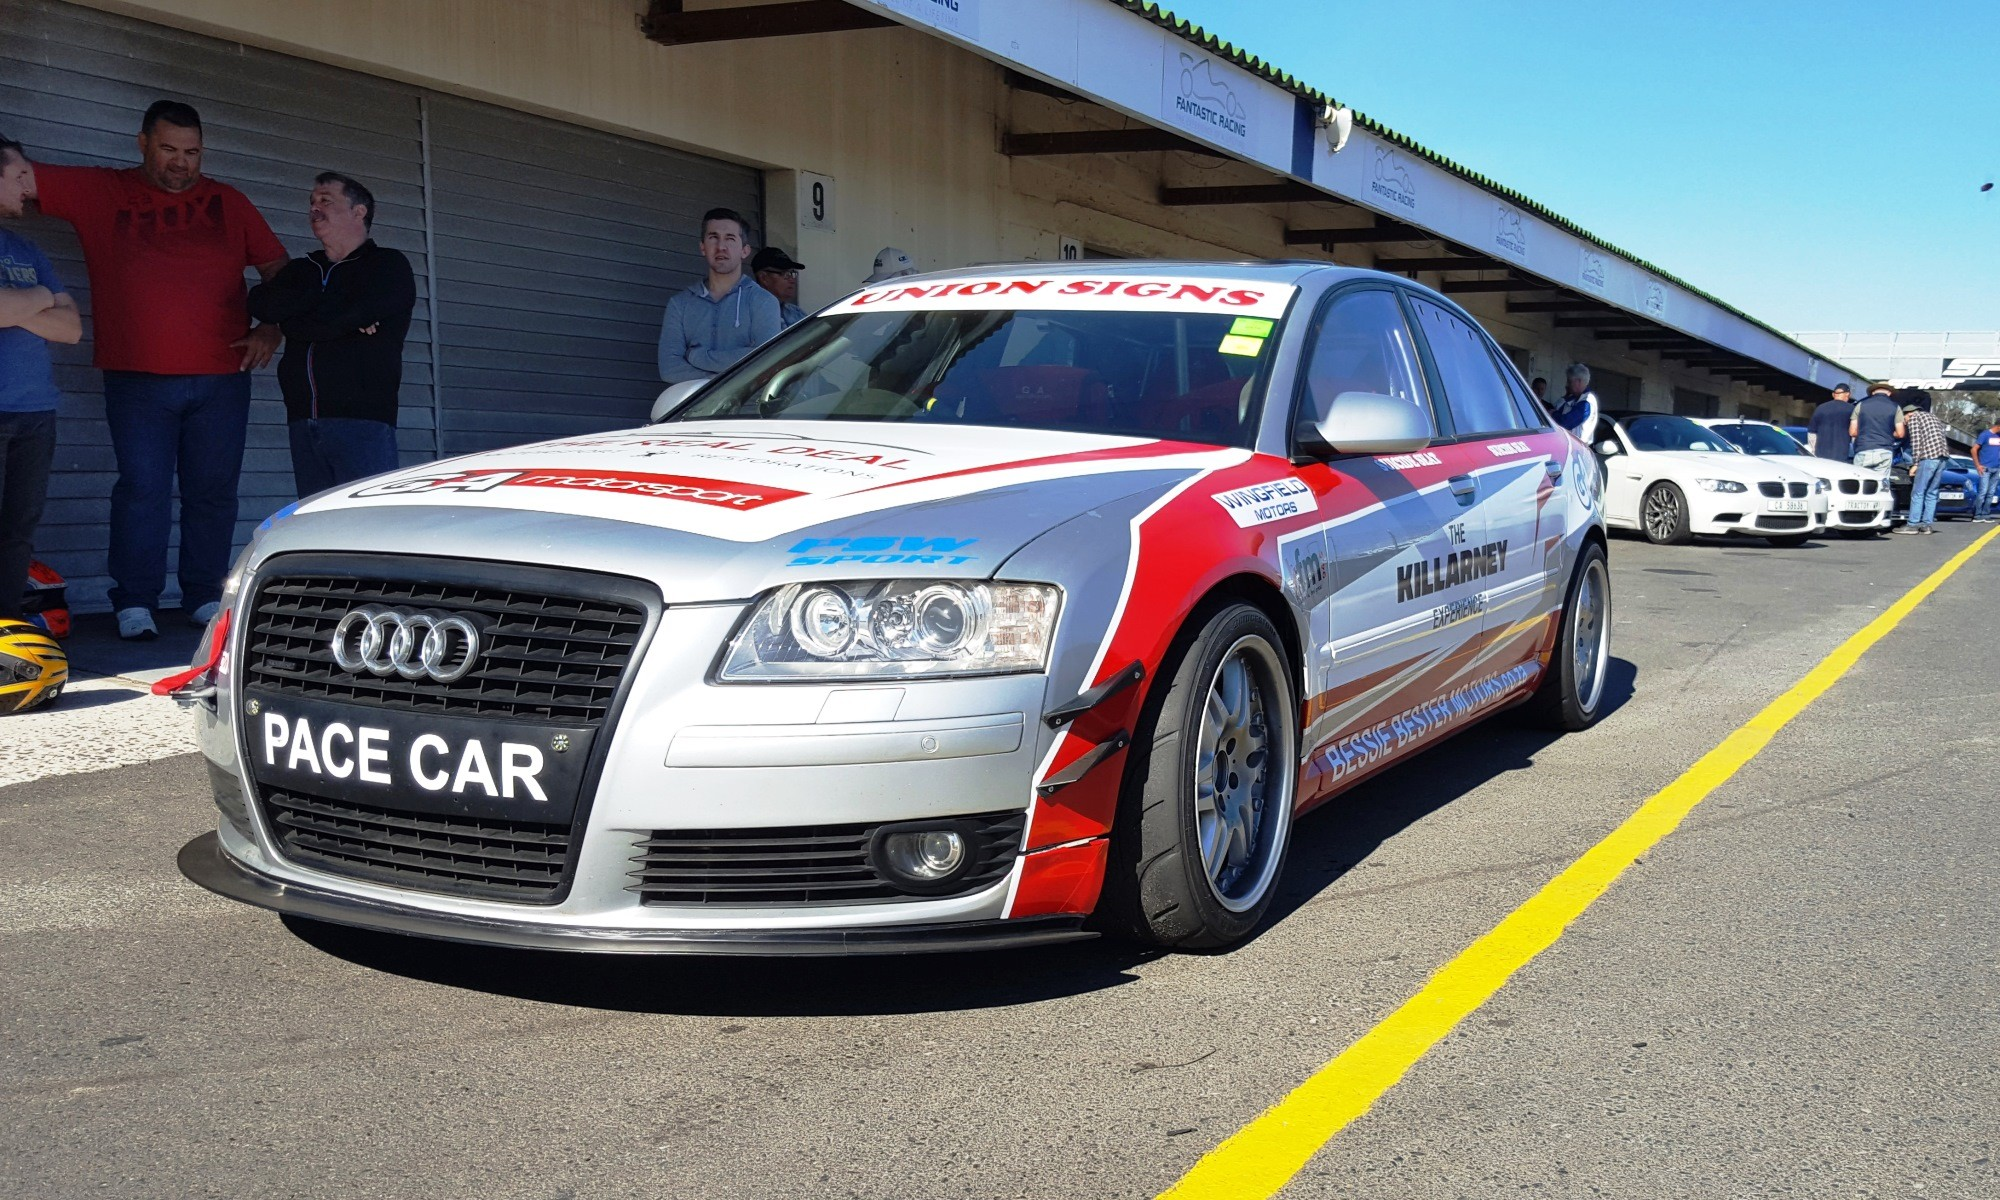 The Killarney Experience Audi Transporter